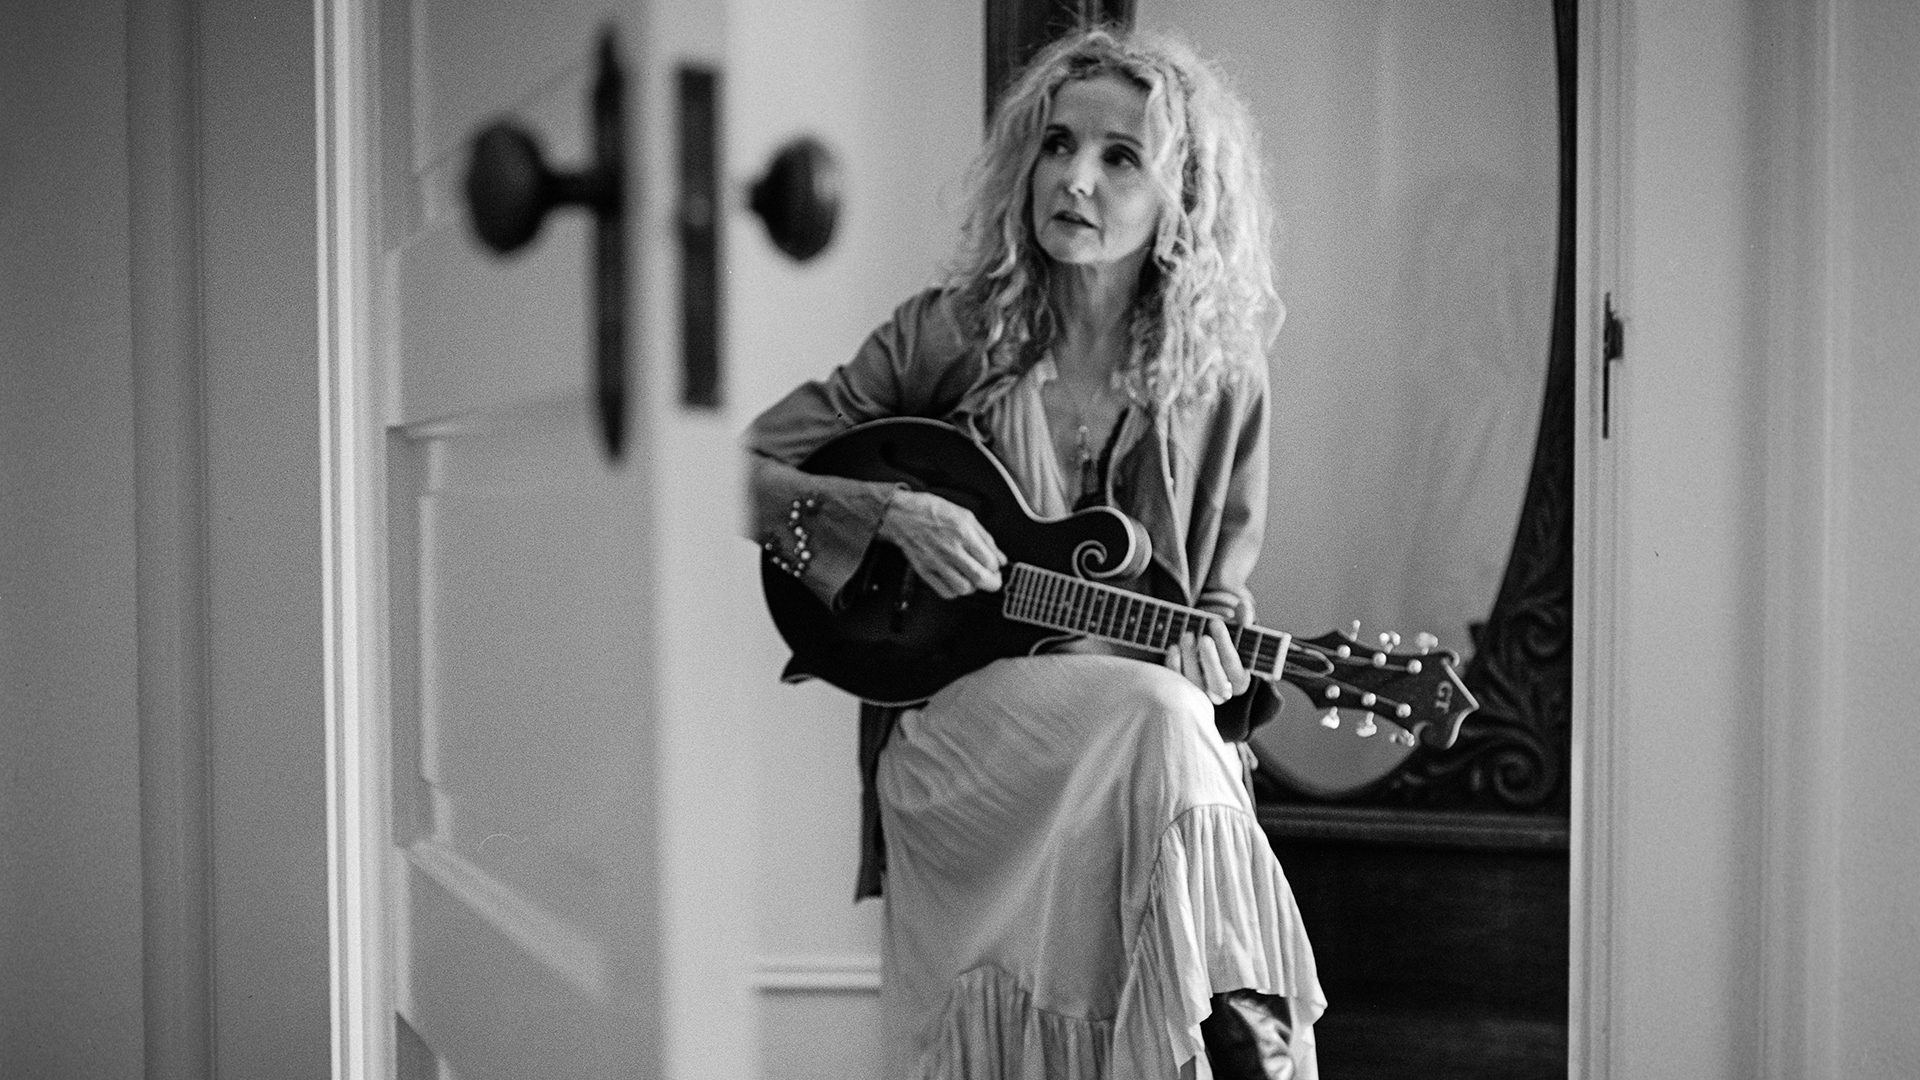 PattyGriffin_1920x1080-2